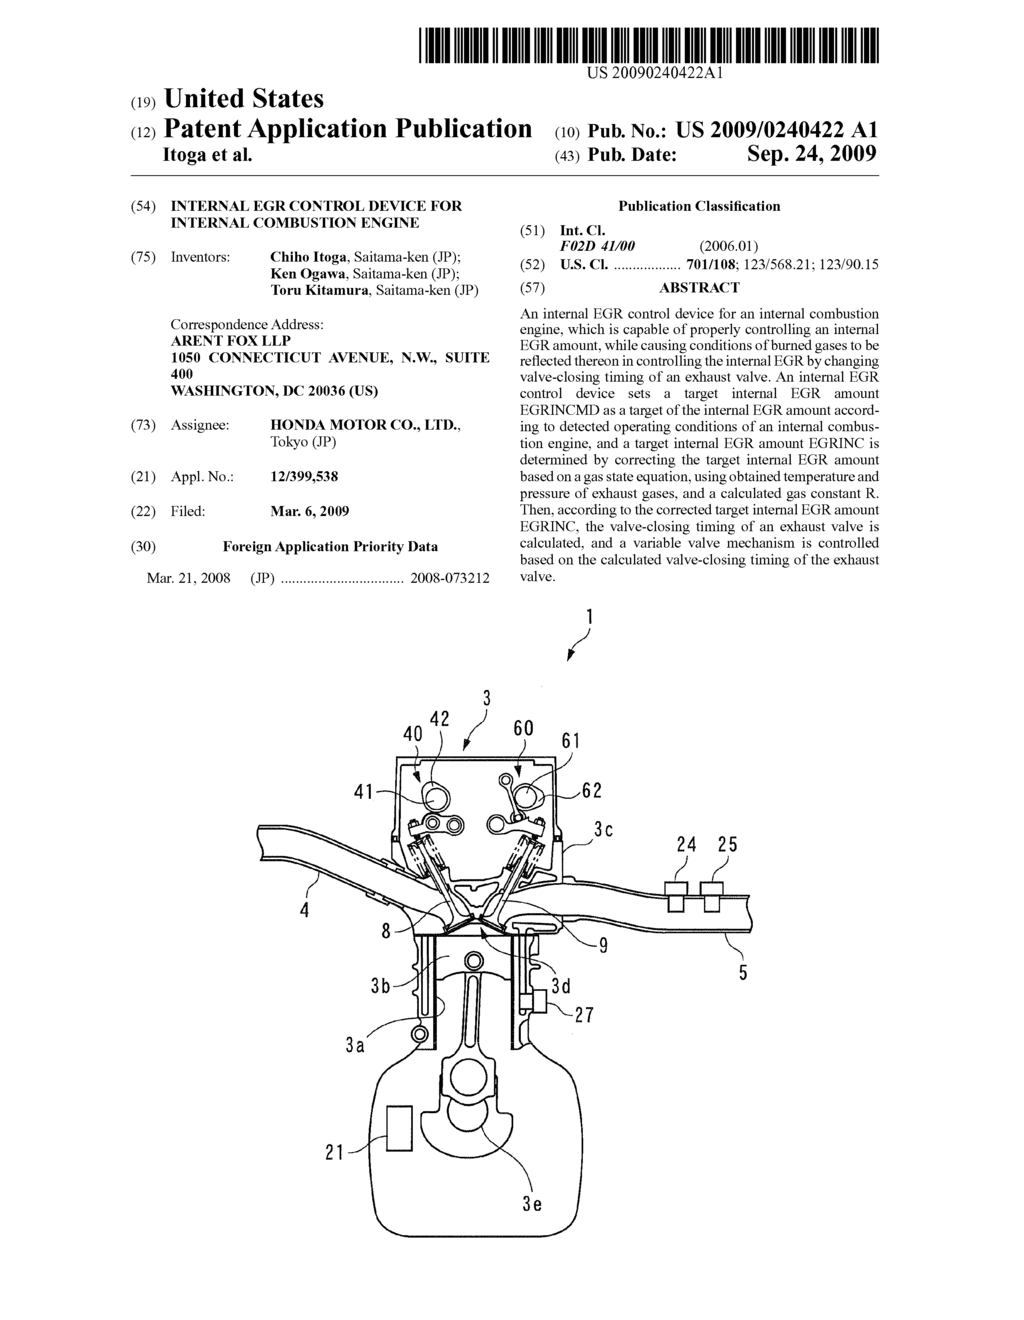 Internal Egr Control Device For Combustion Engine Diagram Schematic And Image 01